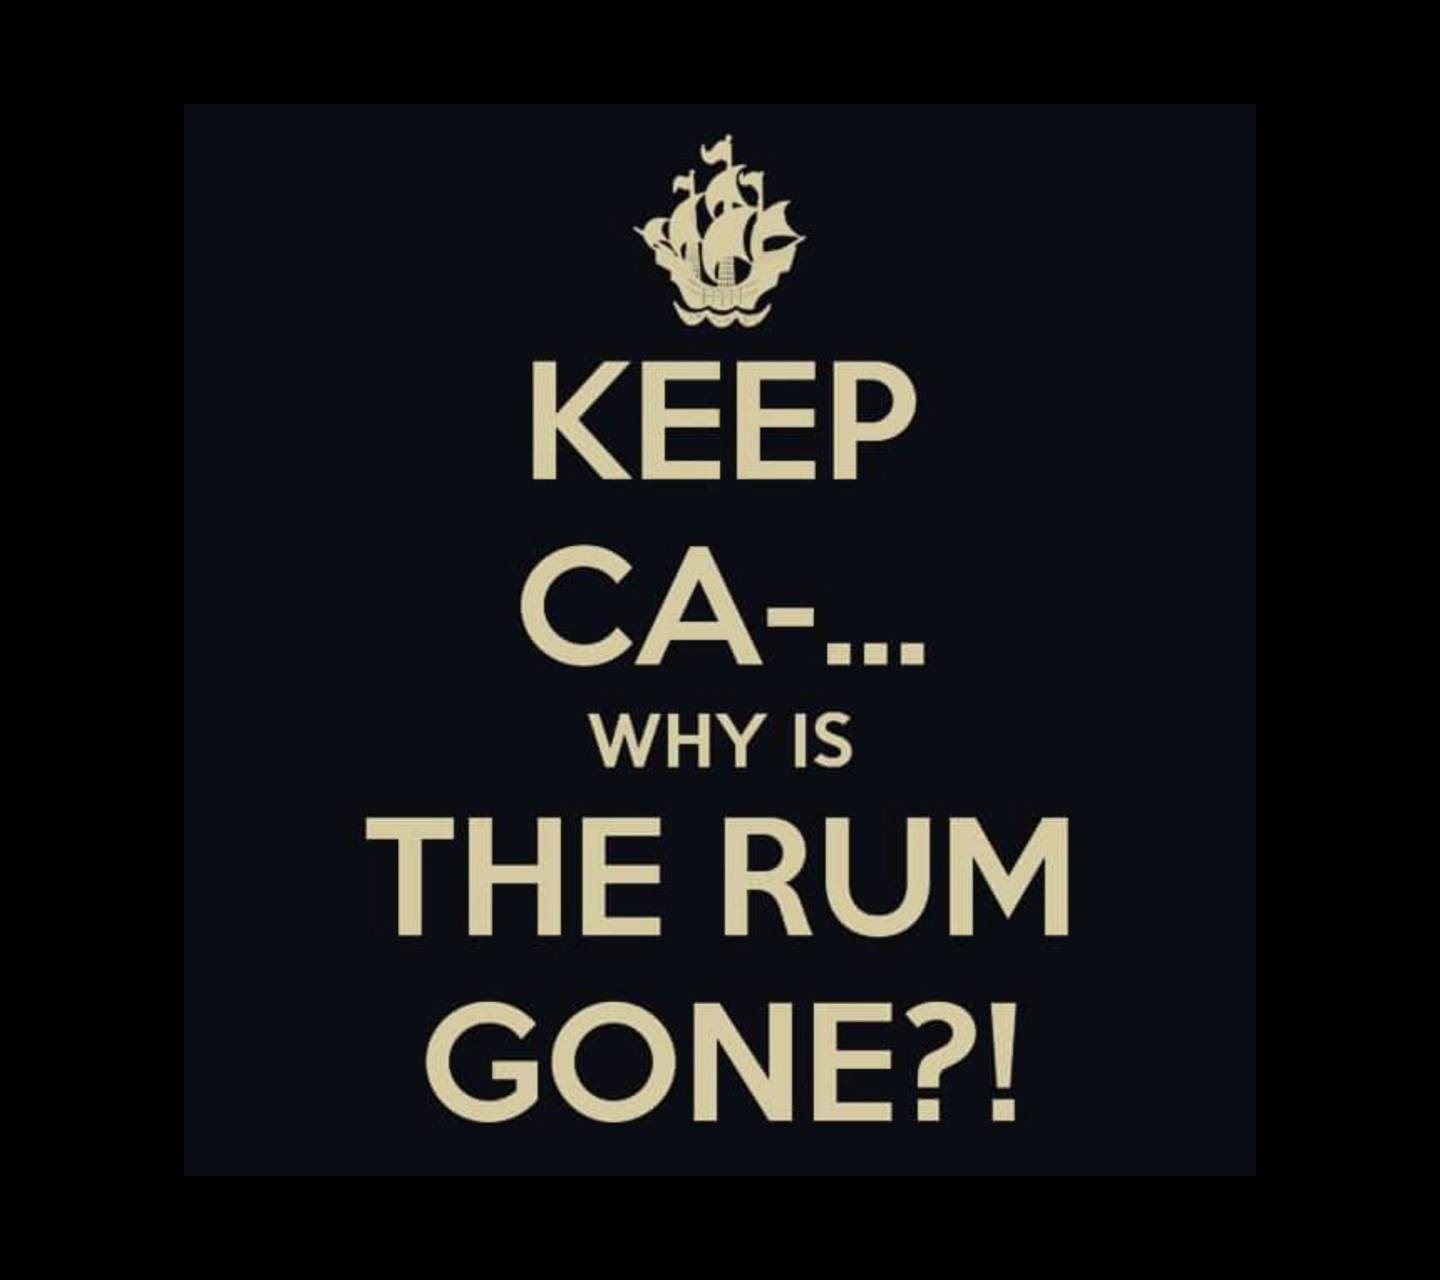 Whys The Rum Gone